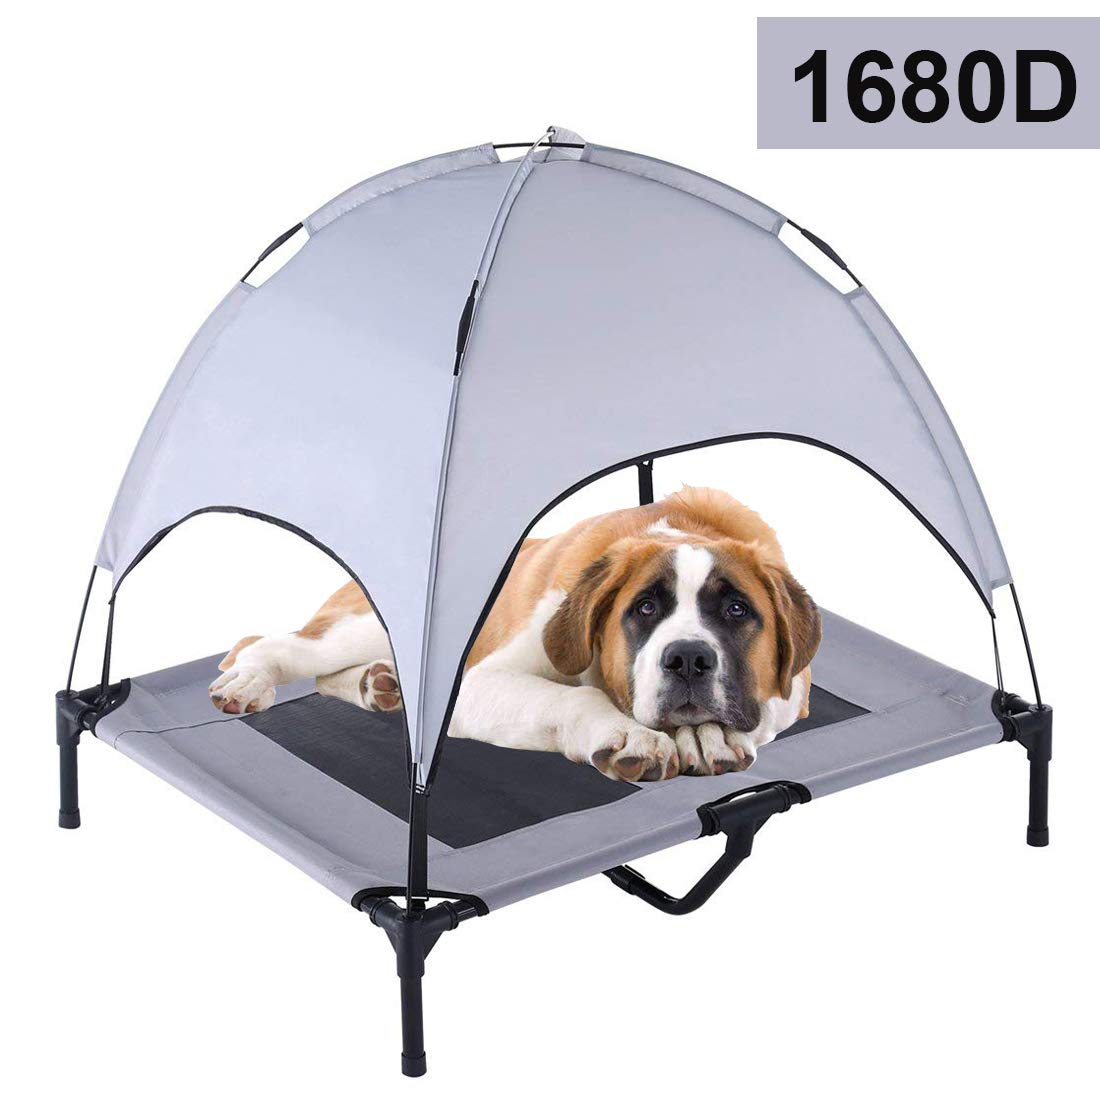 Reliancer Large 36'' Elevated Dog Cot with Canopy Shade 1680D Oxford Fabric Outdoor Pet Cat Cooling Bed Tent w/Convenient Carrying Bag Indoor Sturdy Steel Frame Portable for Camping Beach (36, Grey) by Reliancer